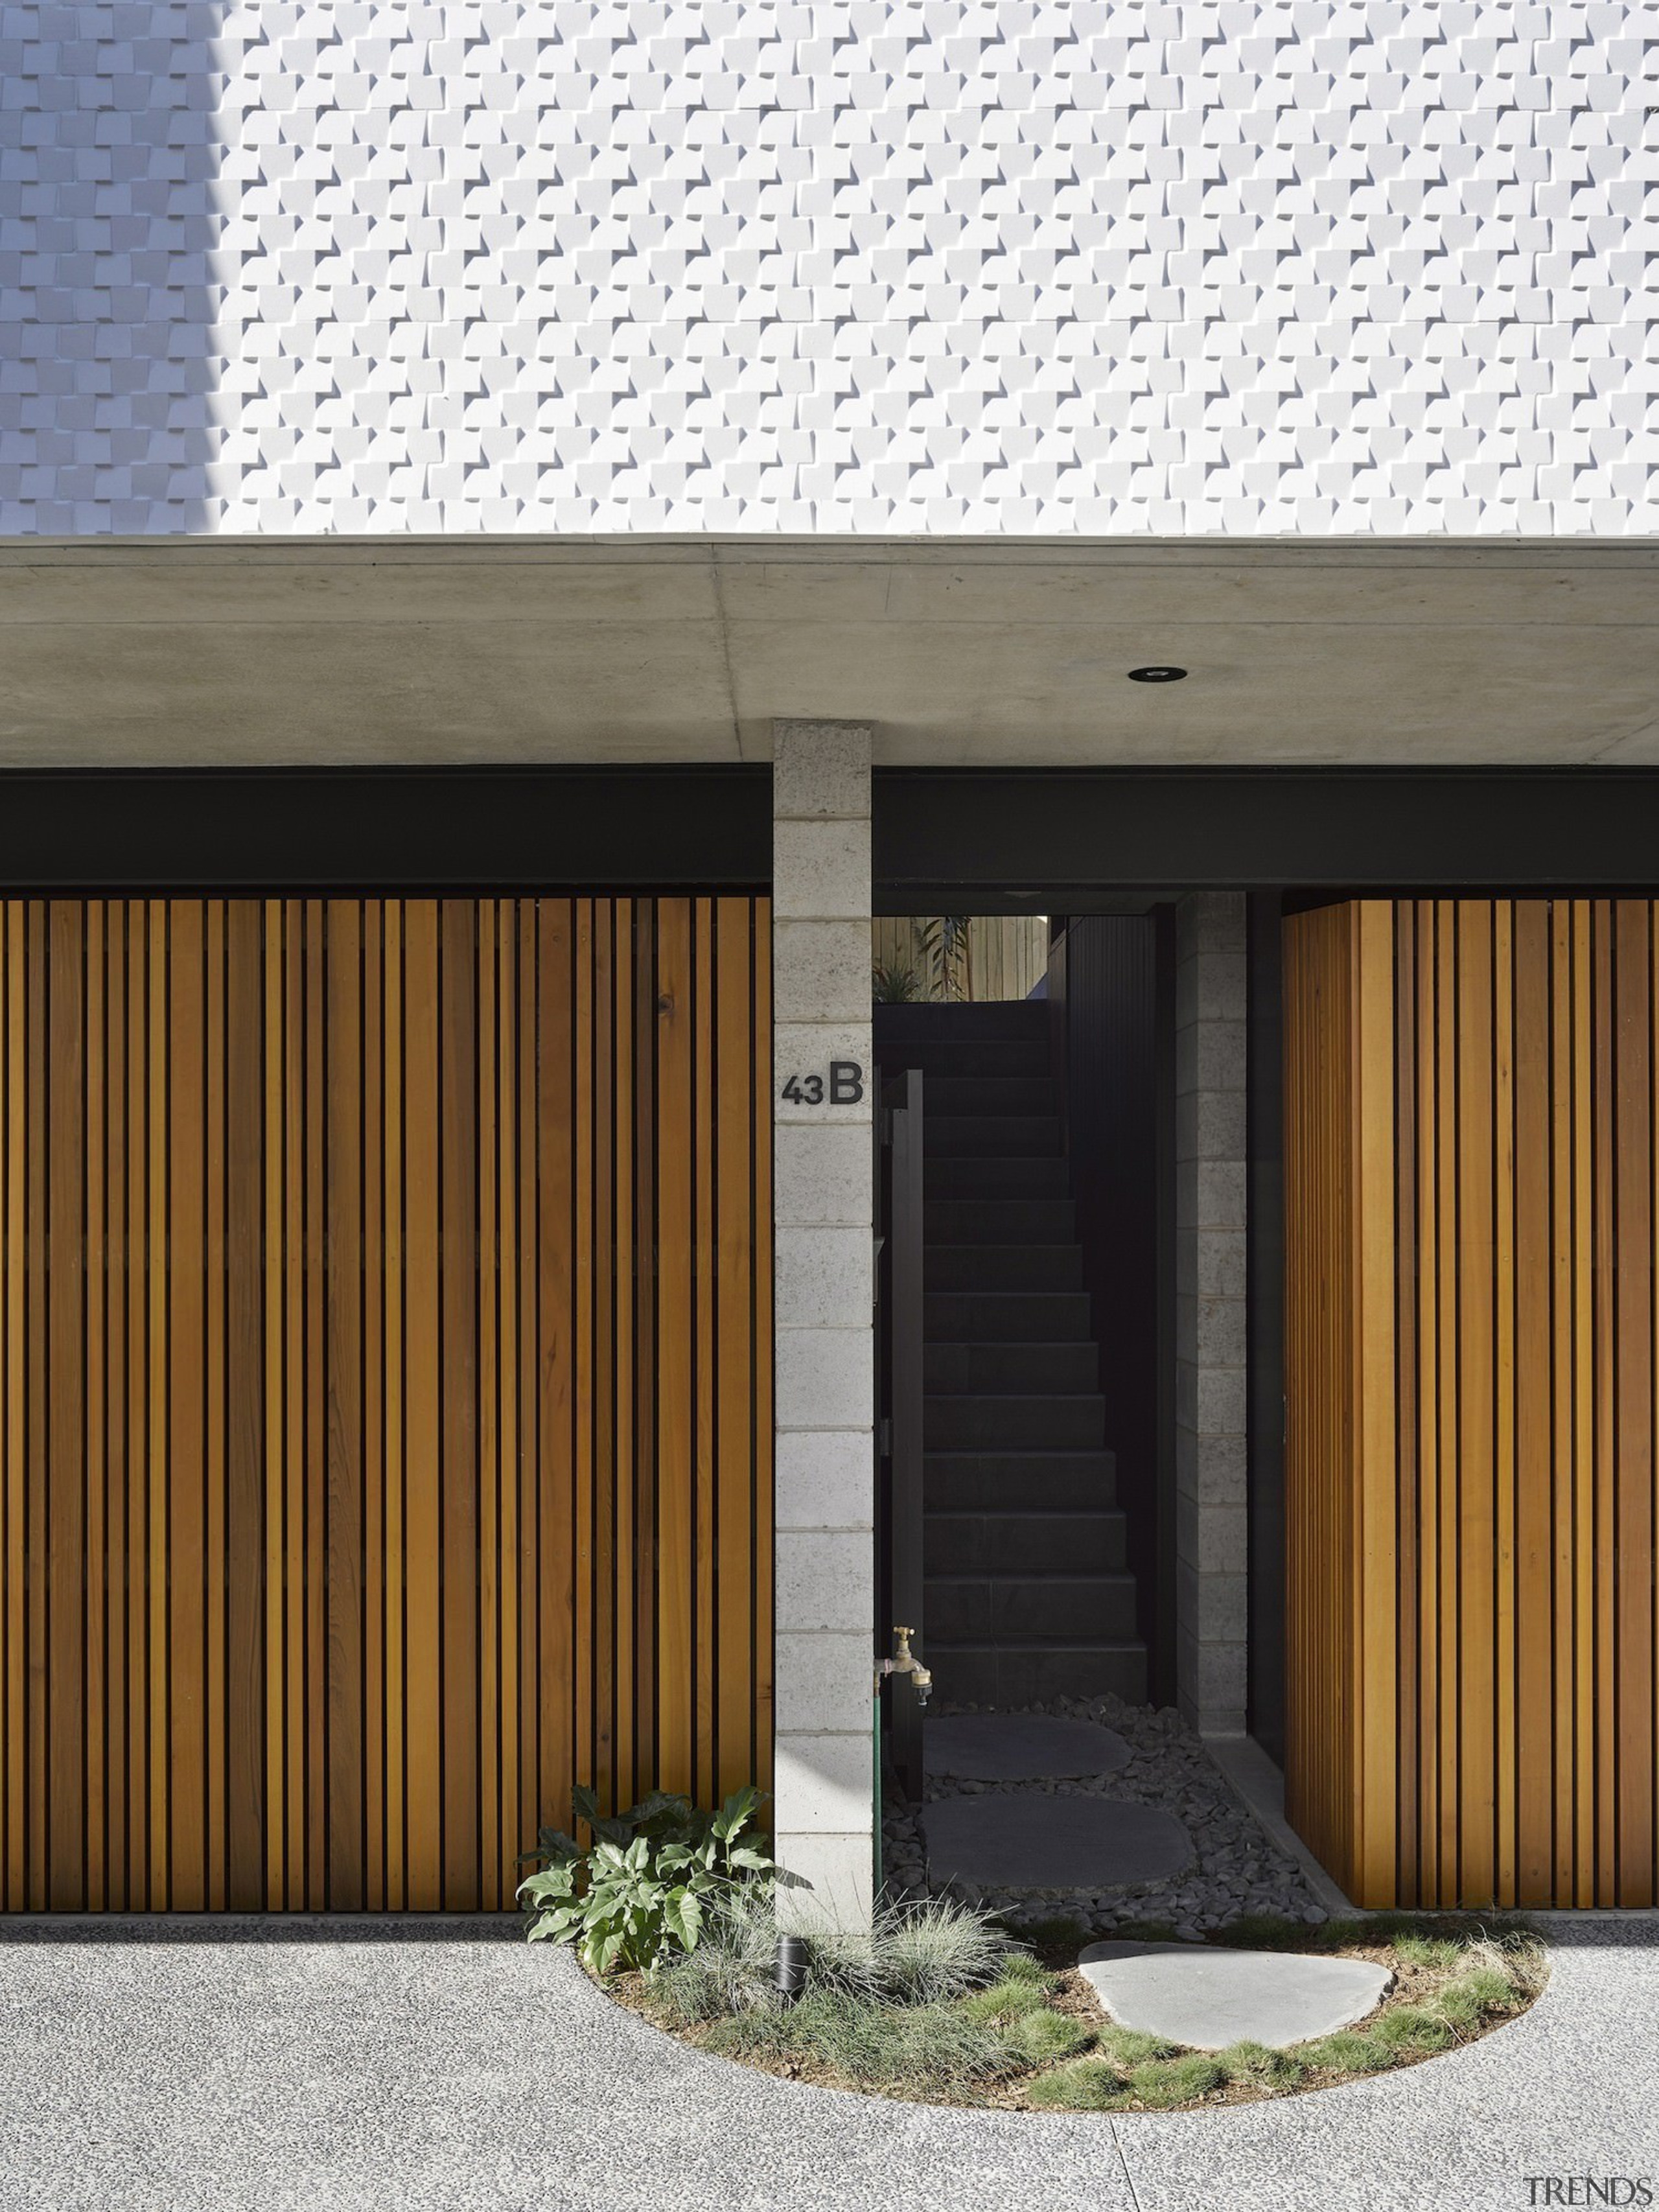 Architect: Refresh DesignPhotography by Roger D'Souza architecture, building, door, facade, garage door, home, house, siding, wood, white